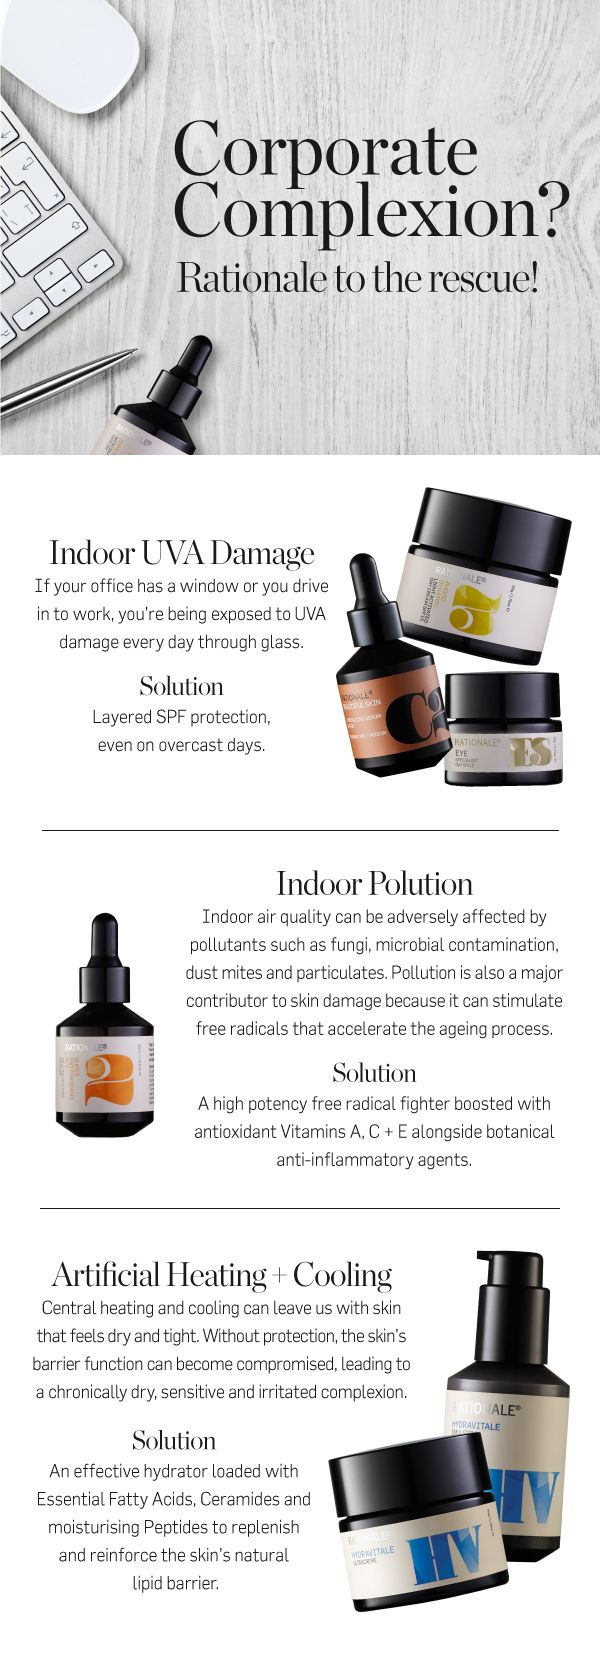 Corporate Complexion? Rationale has you covered!